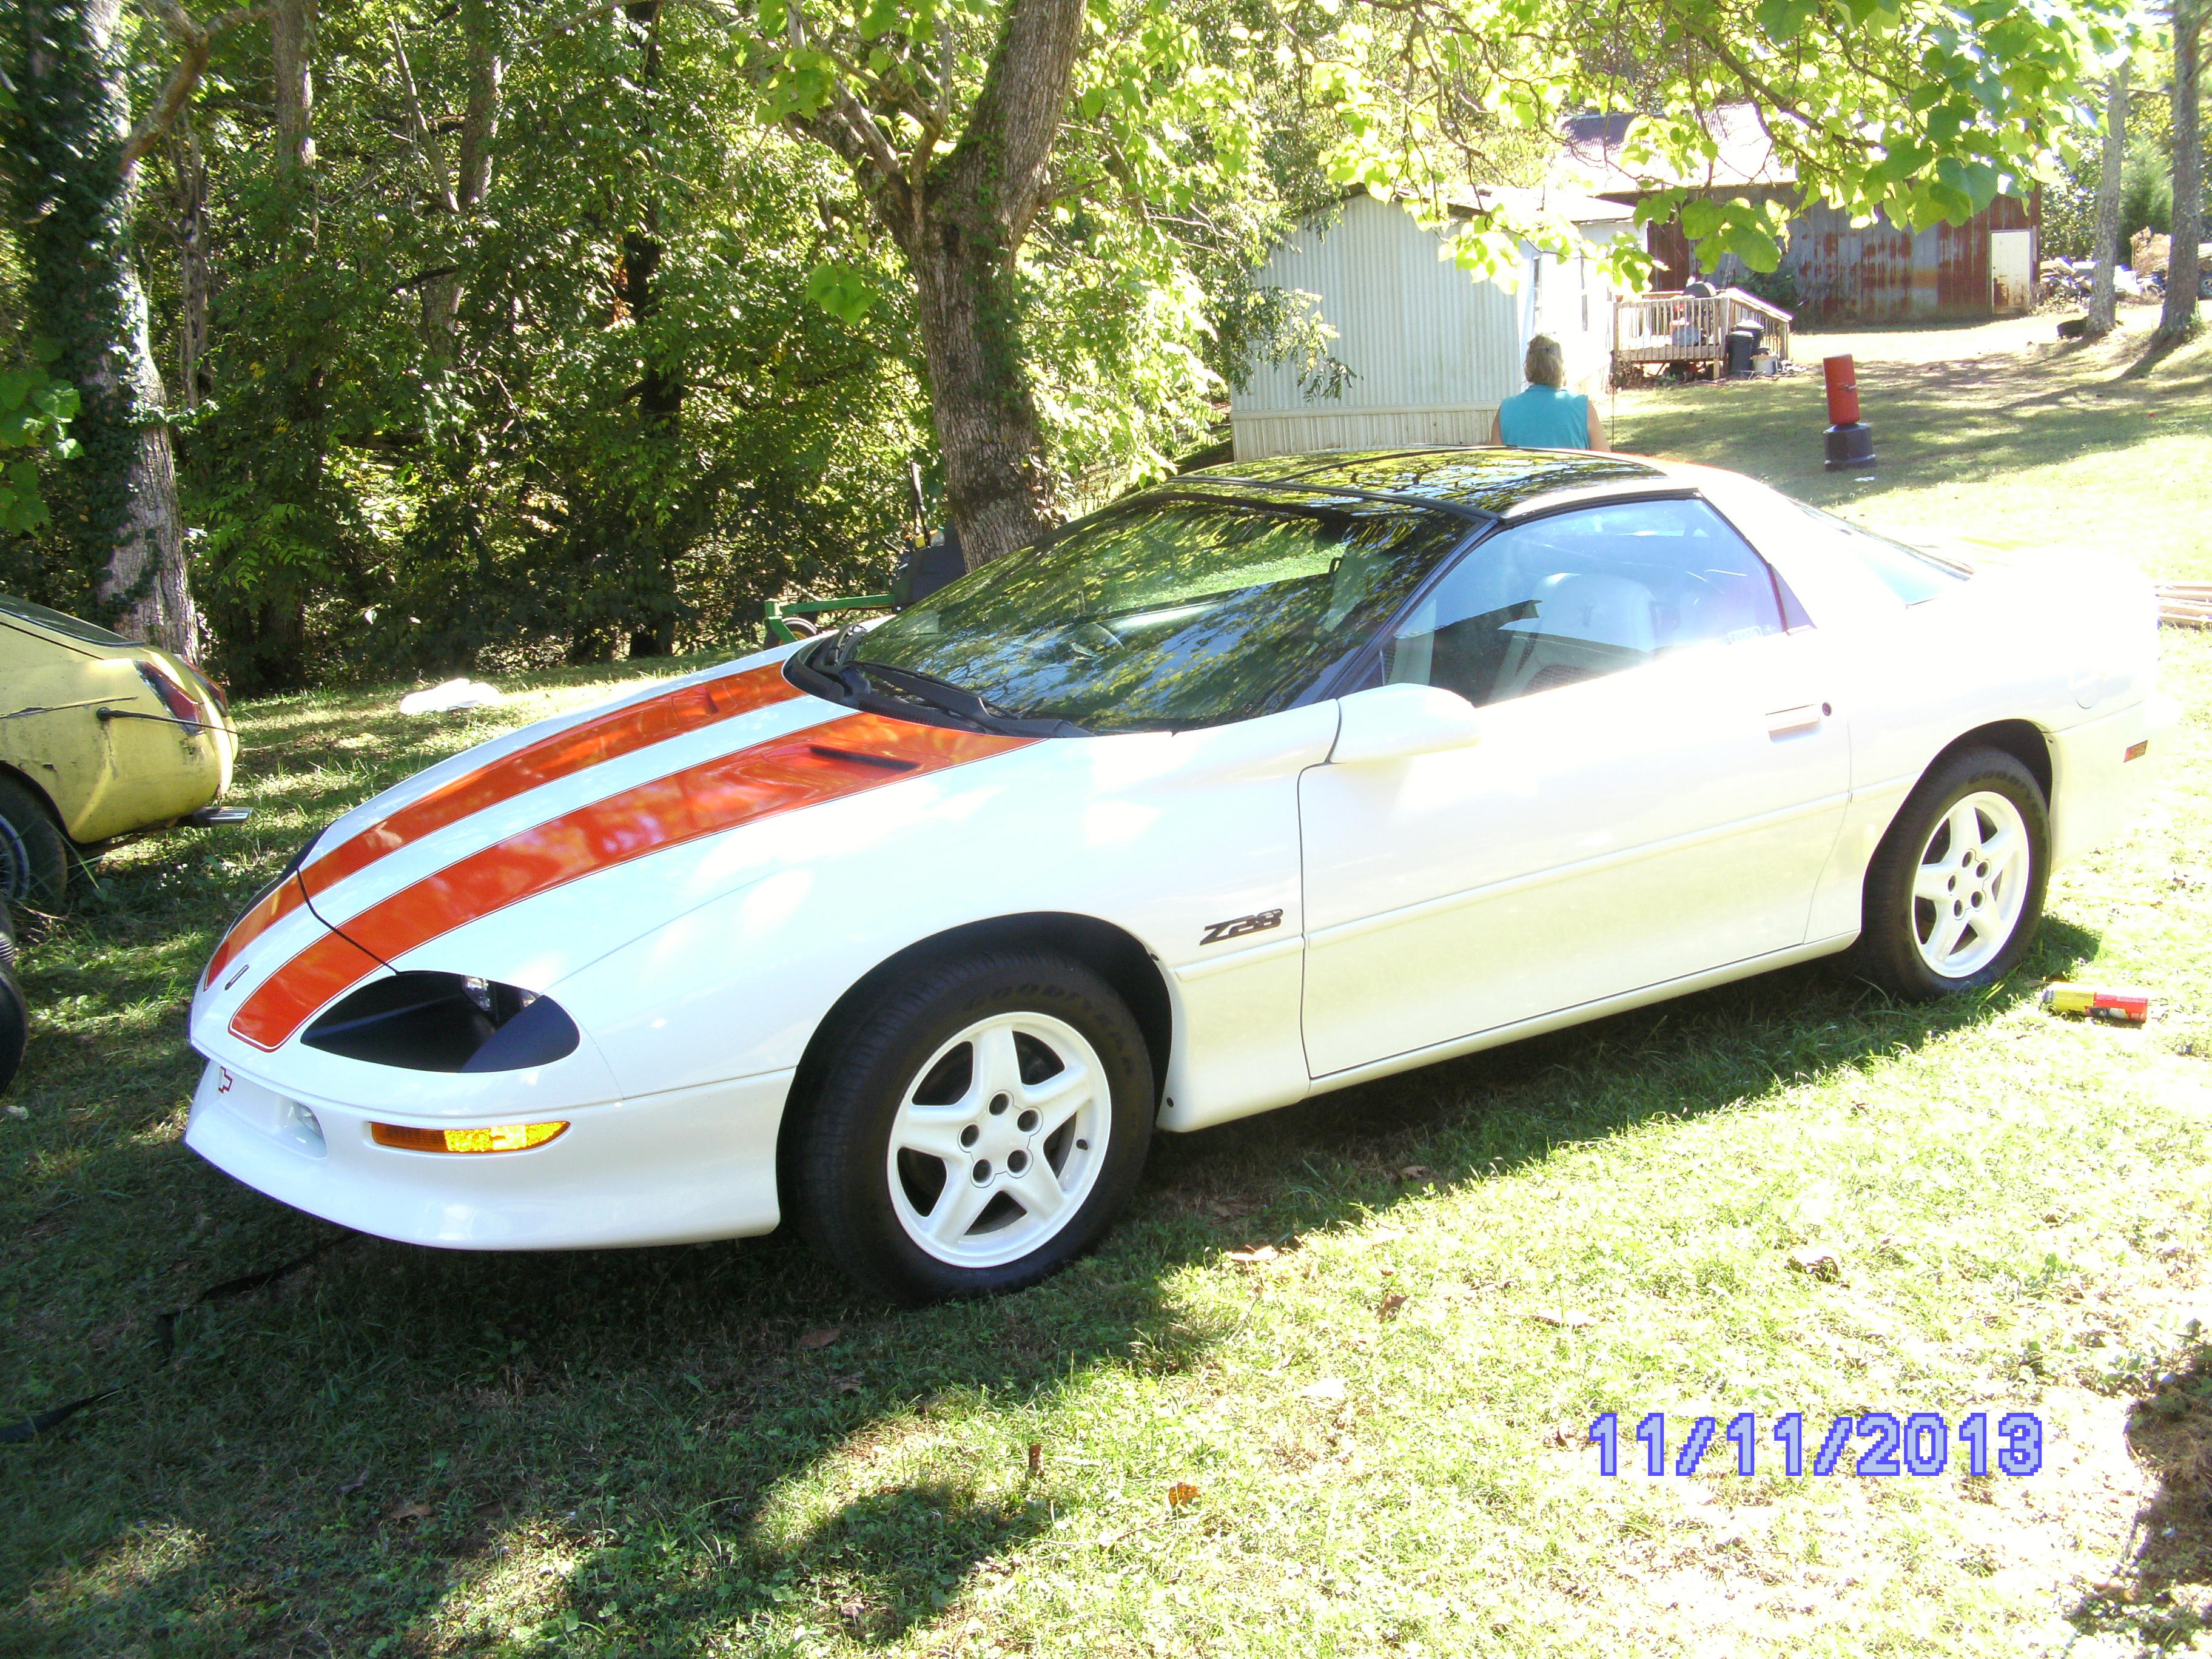 Click image for larger version  Name:1997 Chevrolet Camaro Z28 006.jpg Views:74 Size:1.88 MB ID:88705